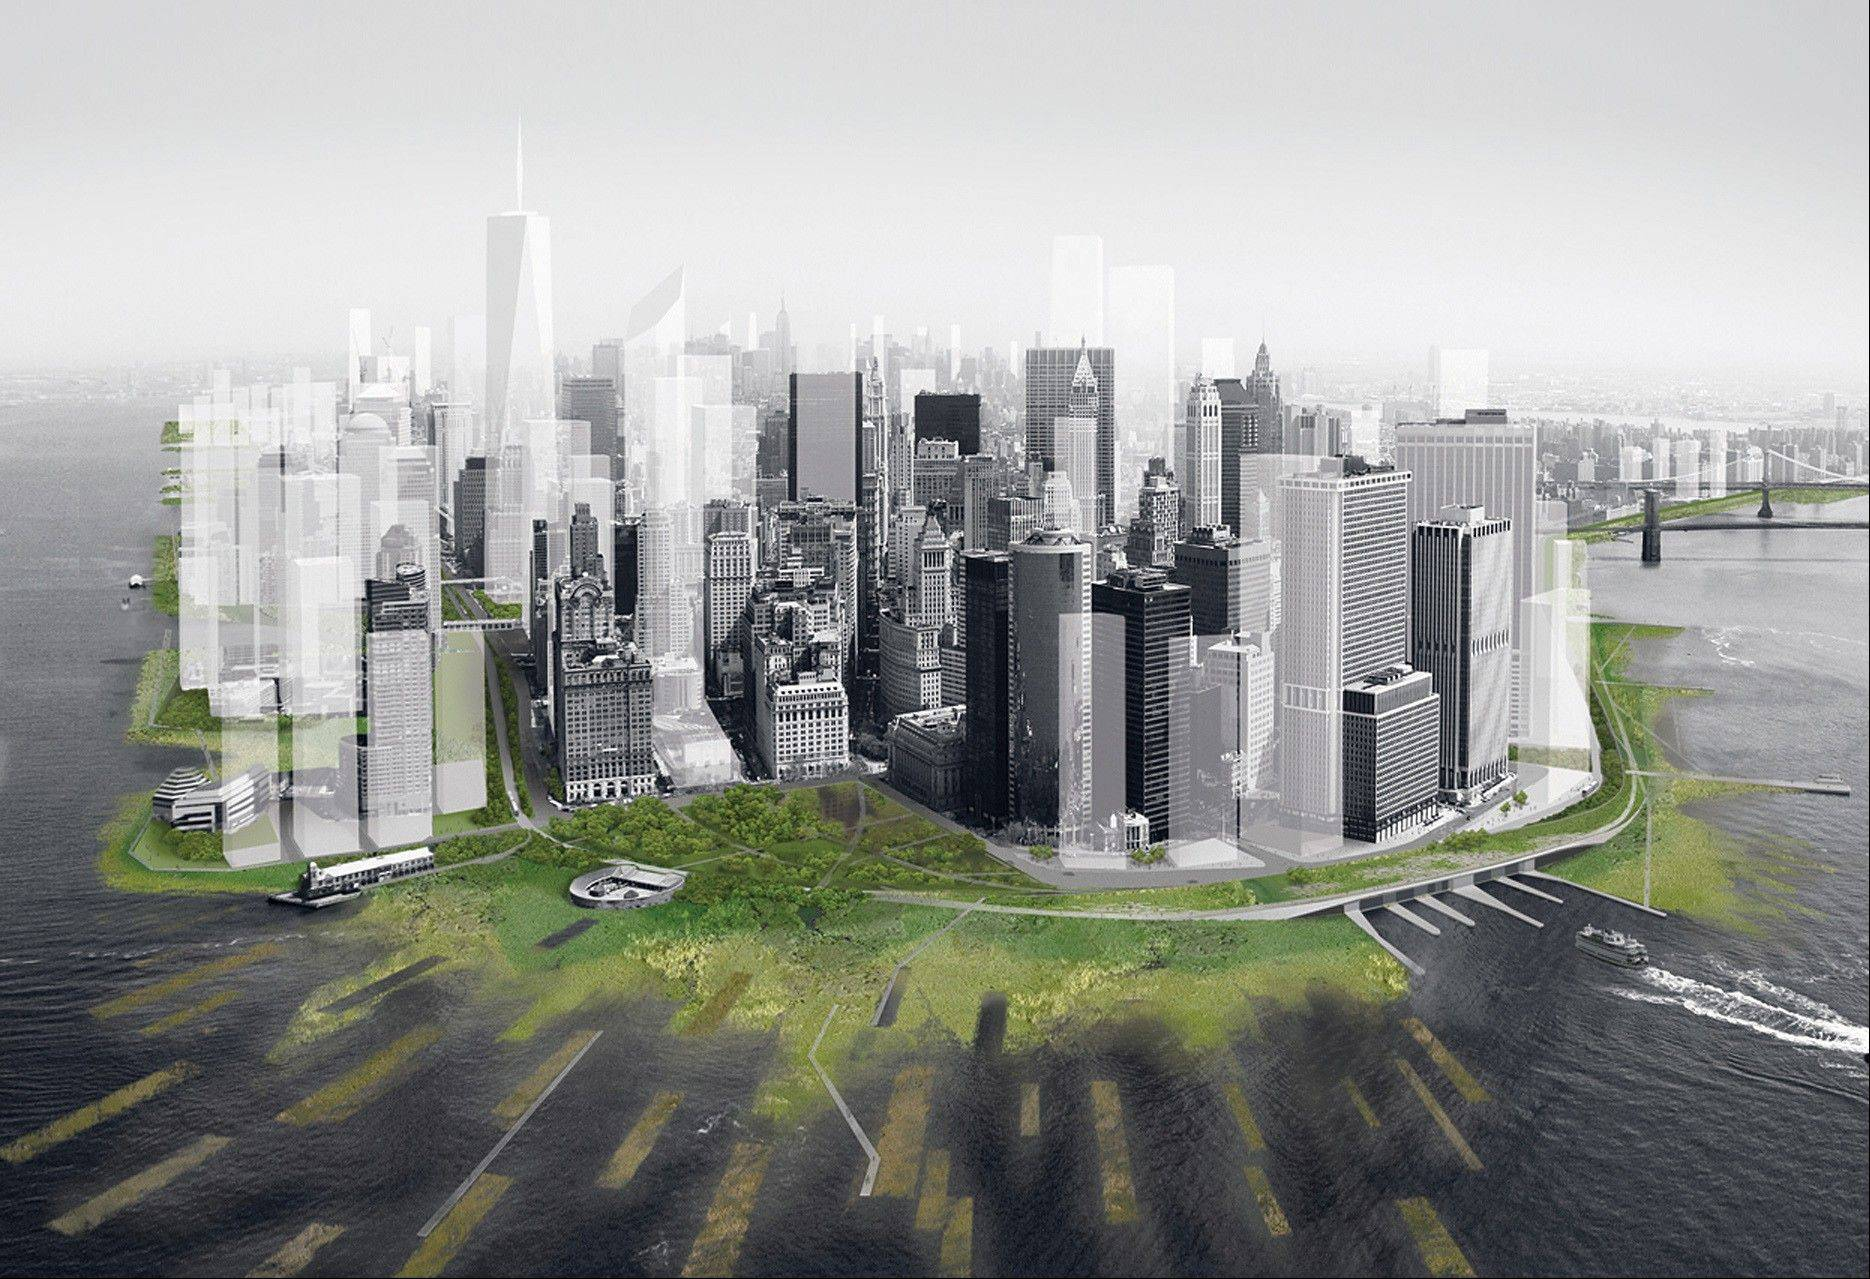 This artist�s rendering shows a proposed perimeter wetlands and an archipelago of man-made barrier islets on New York�s Manhattan island, designed to absorb the brunt of a huge storm surge. The concept was worked up by DLANDSTUDIO and Architecture Research Office, two city architectural firms, for a museum project.